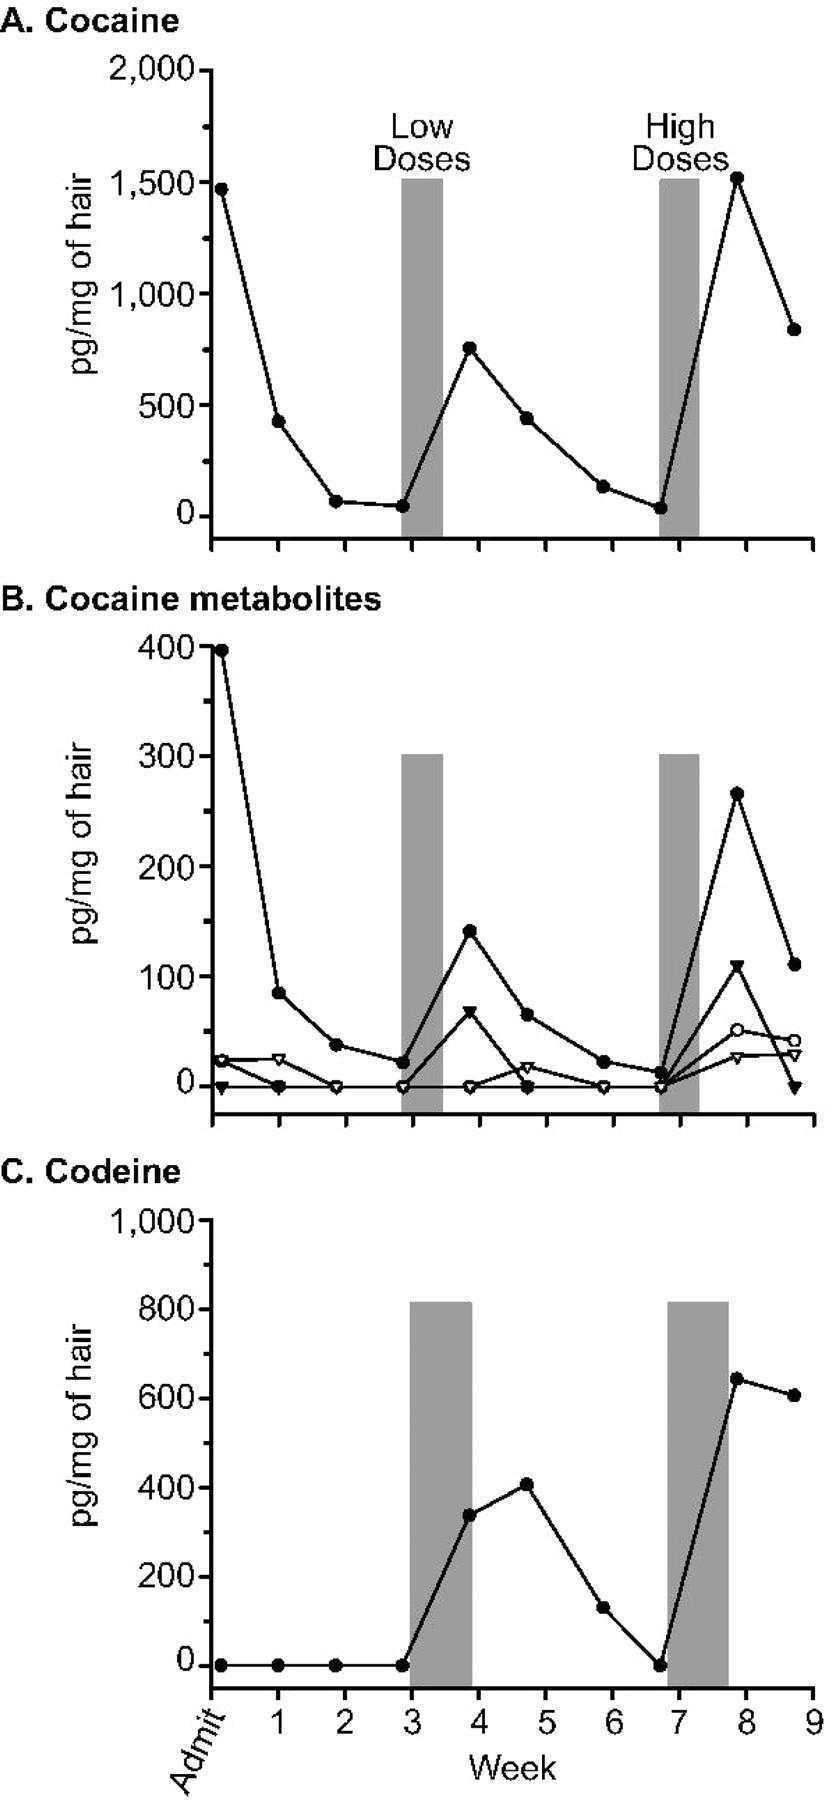 Dose-Related Distribution of Codeine, Cocaine, and